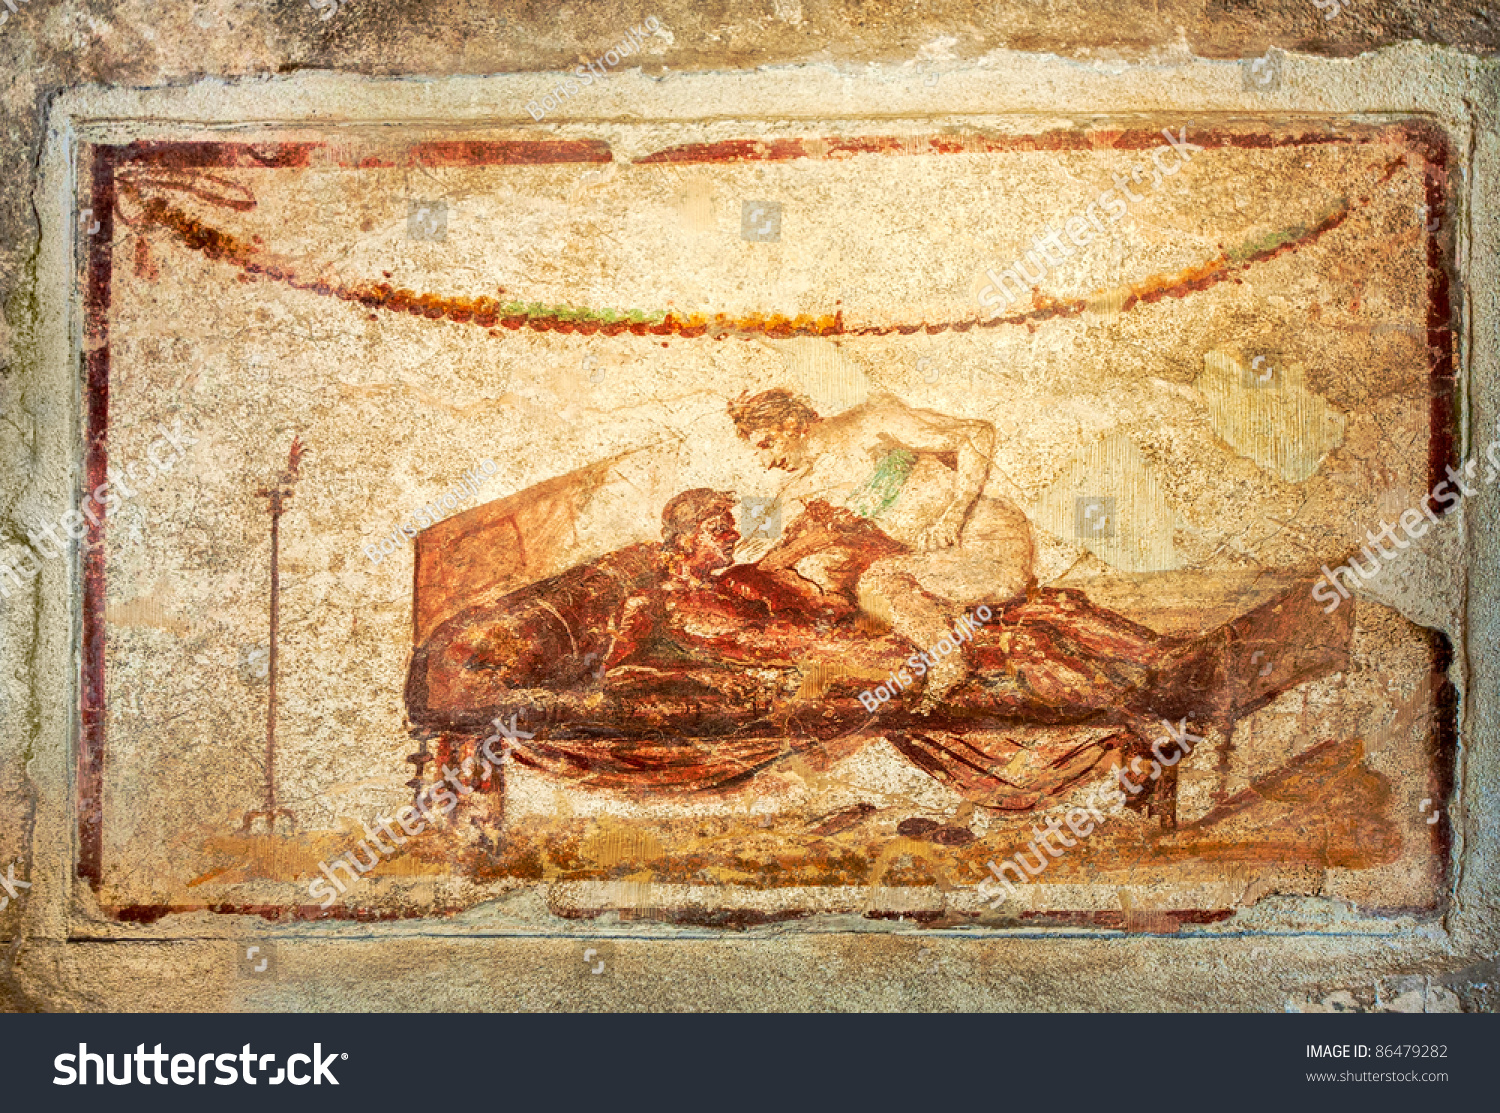 Two Thousand Years Old Roman Antique Stock Photo & Image (Royalty ...